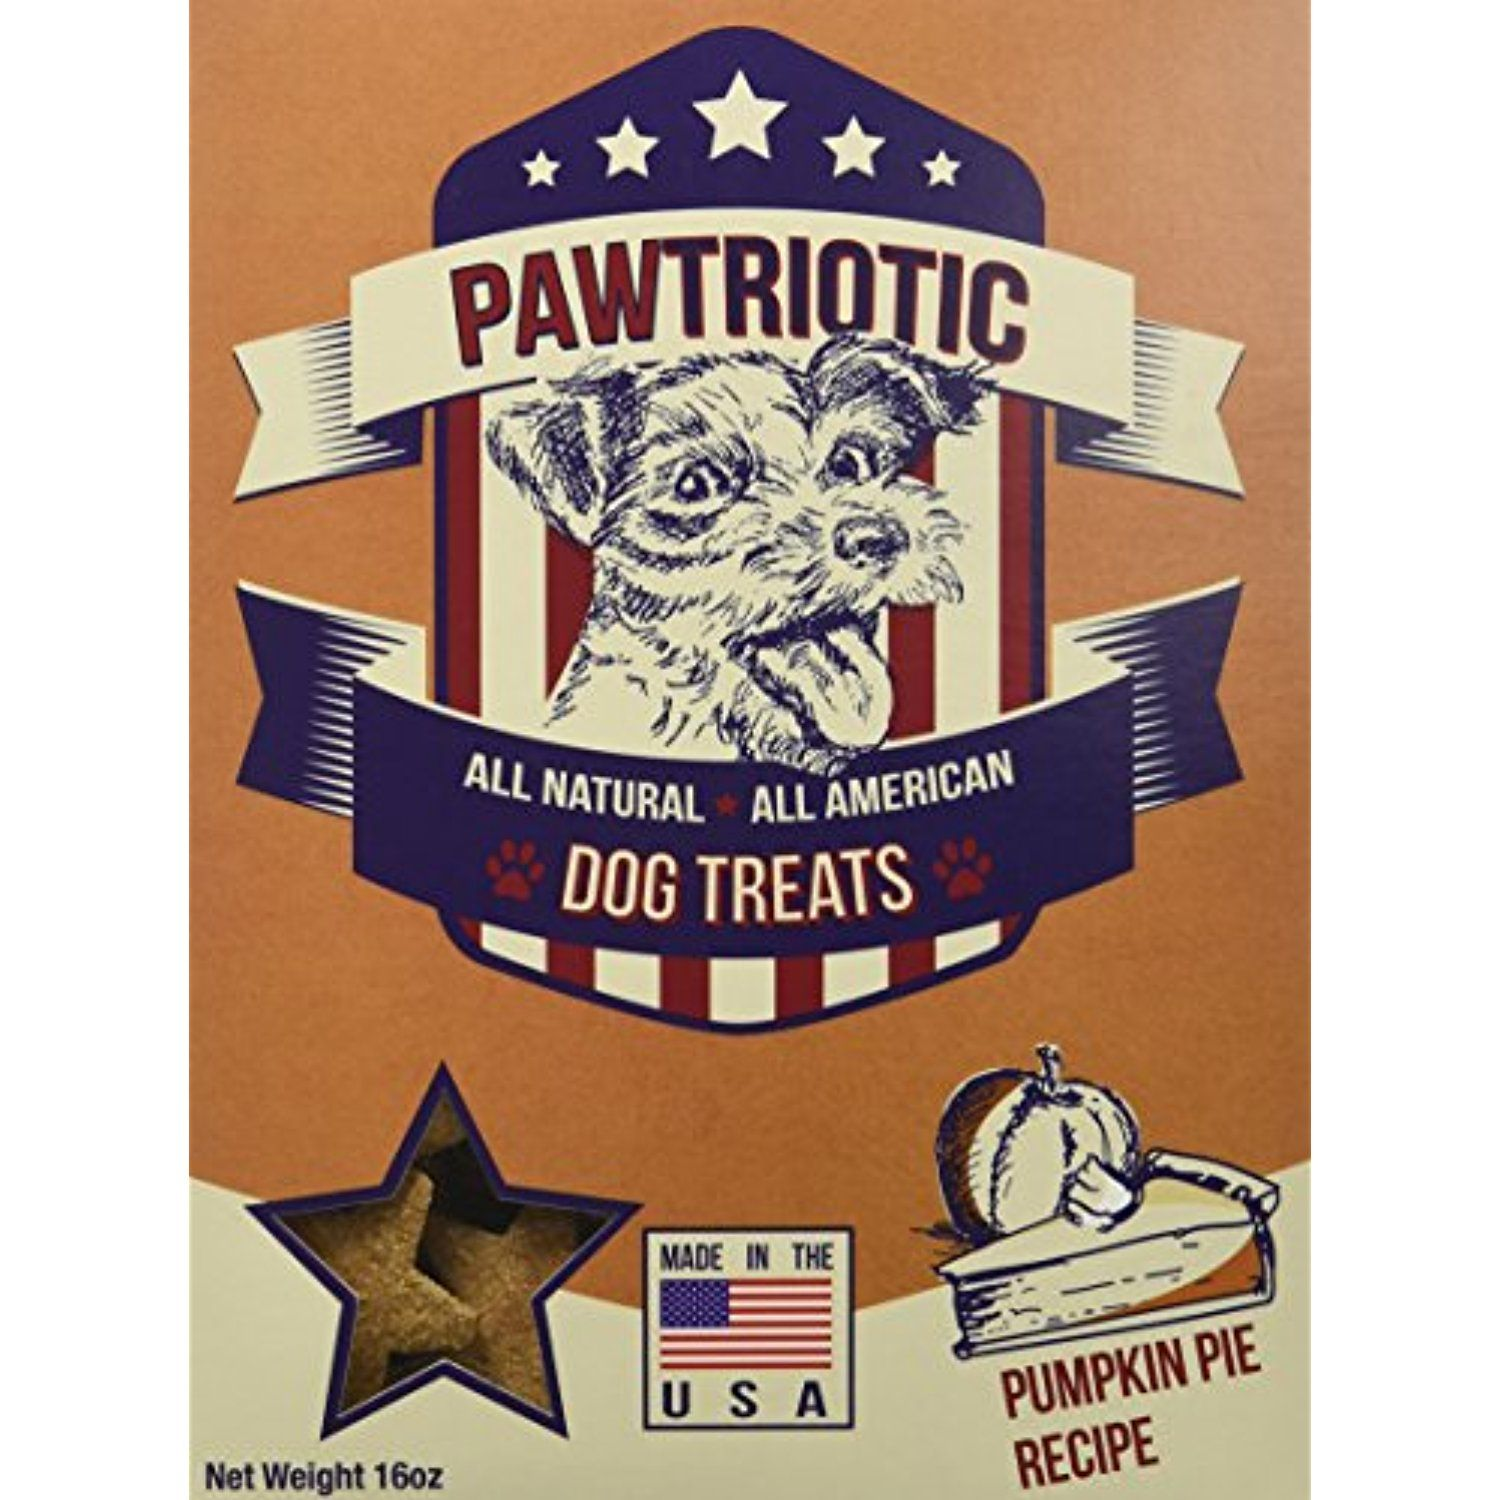 PAWTRIOTIC All Natural All American Dog Treats (3 Pack